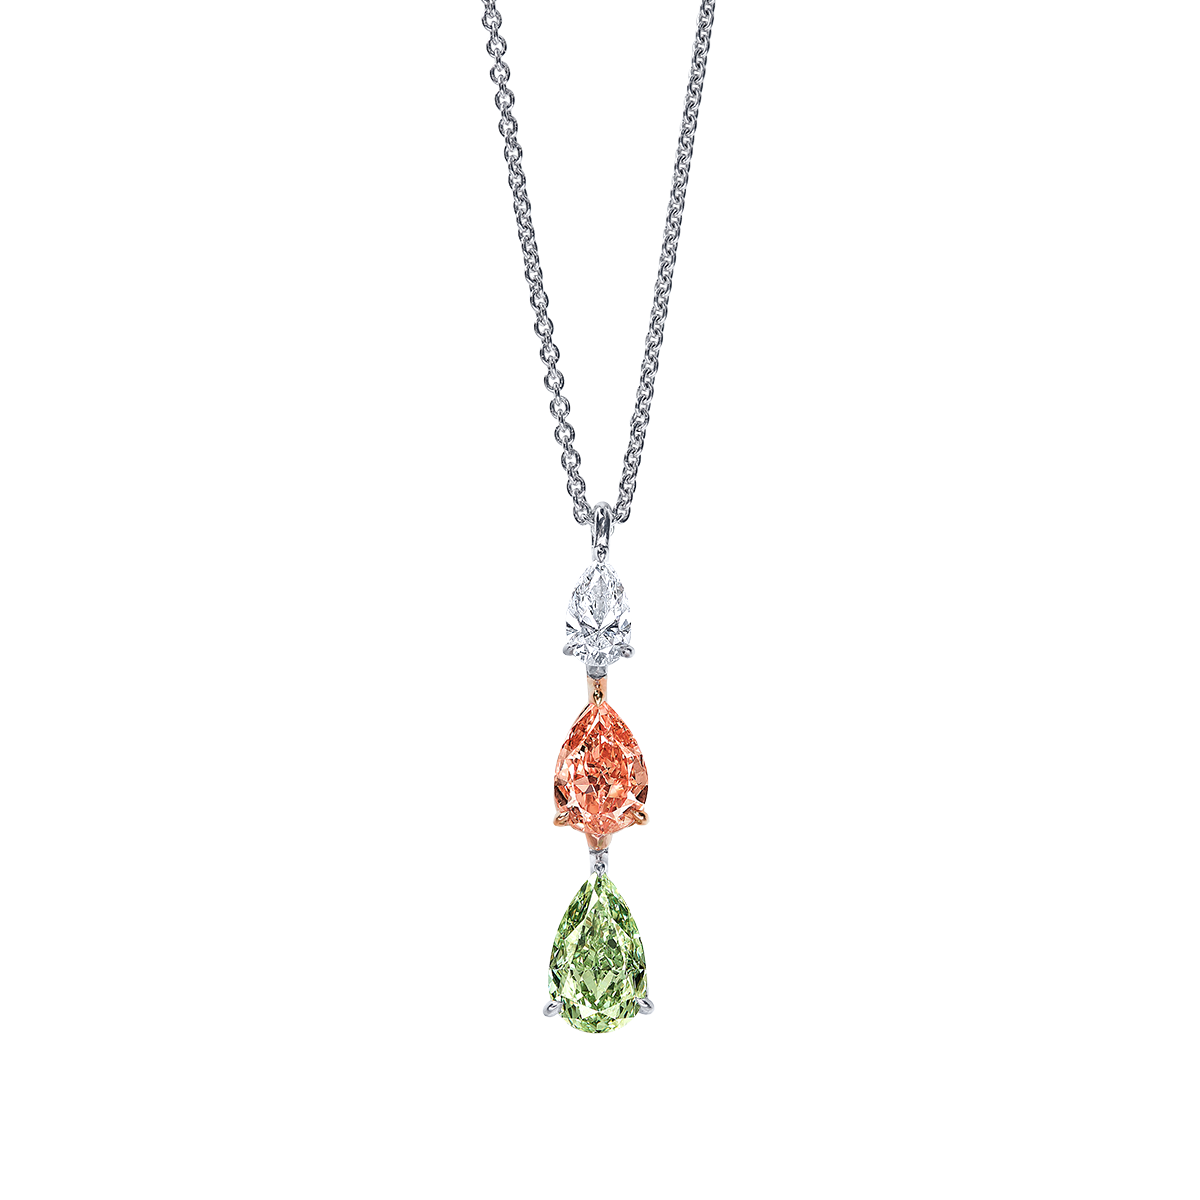 GIA 5.91克拉 彩鑽鑽石墜鍊